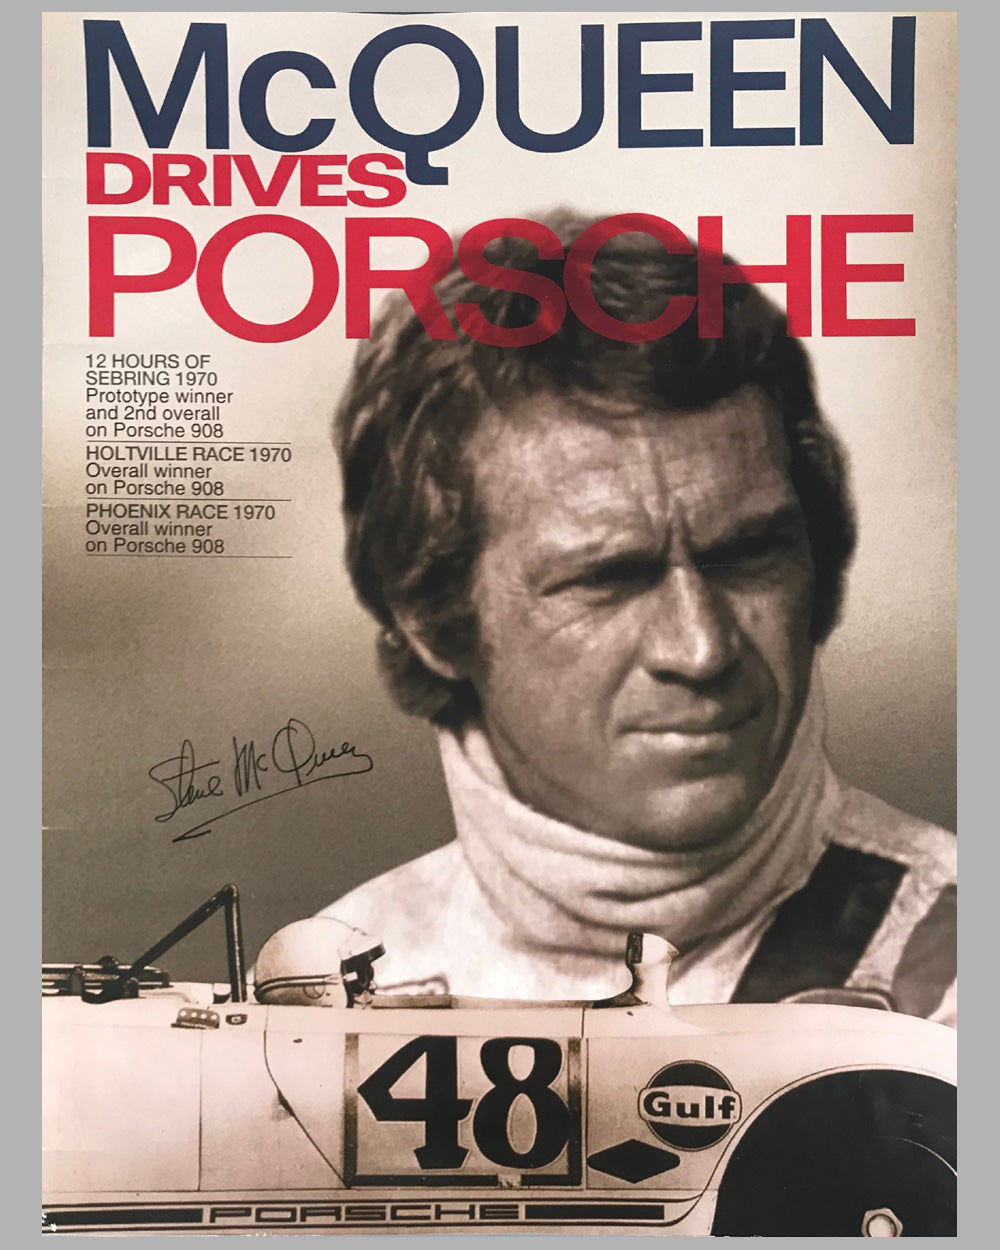 Steve McQueen drives Porsche reproduction poster